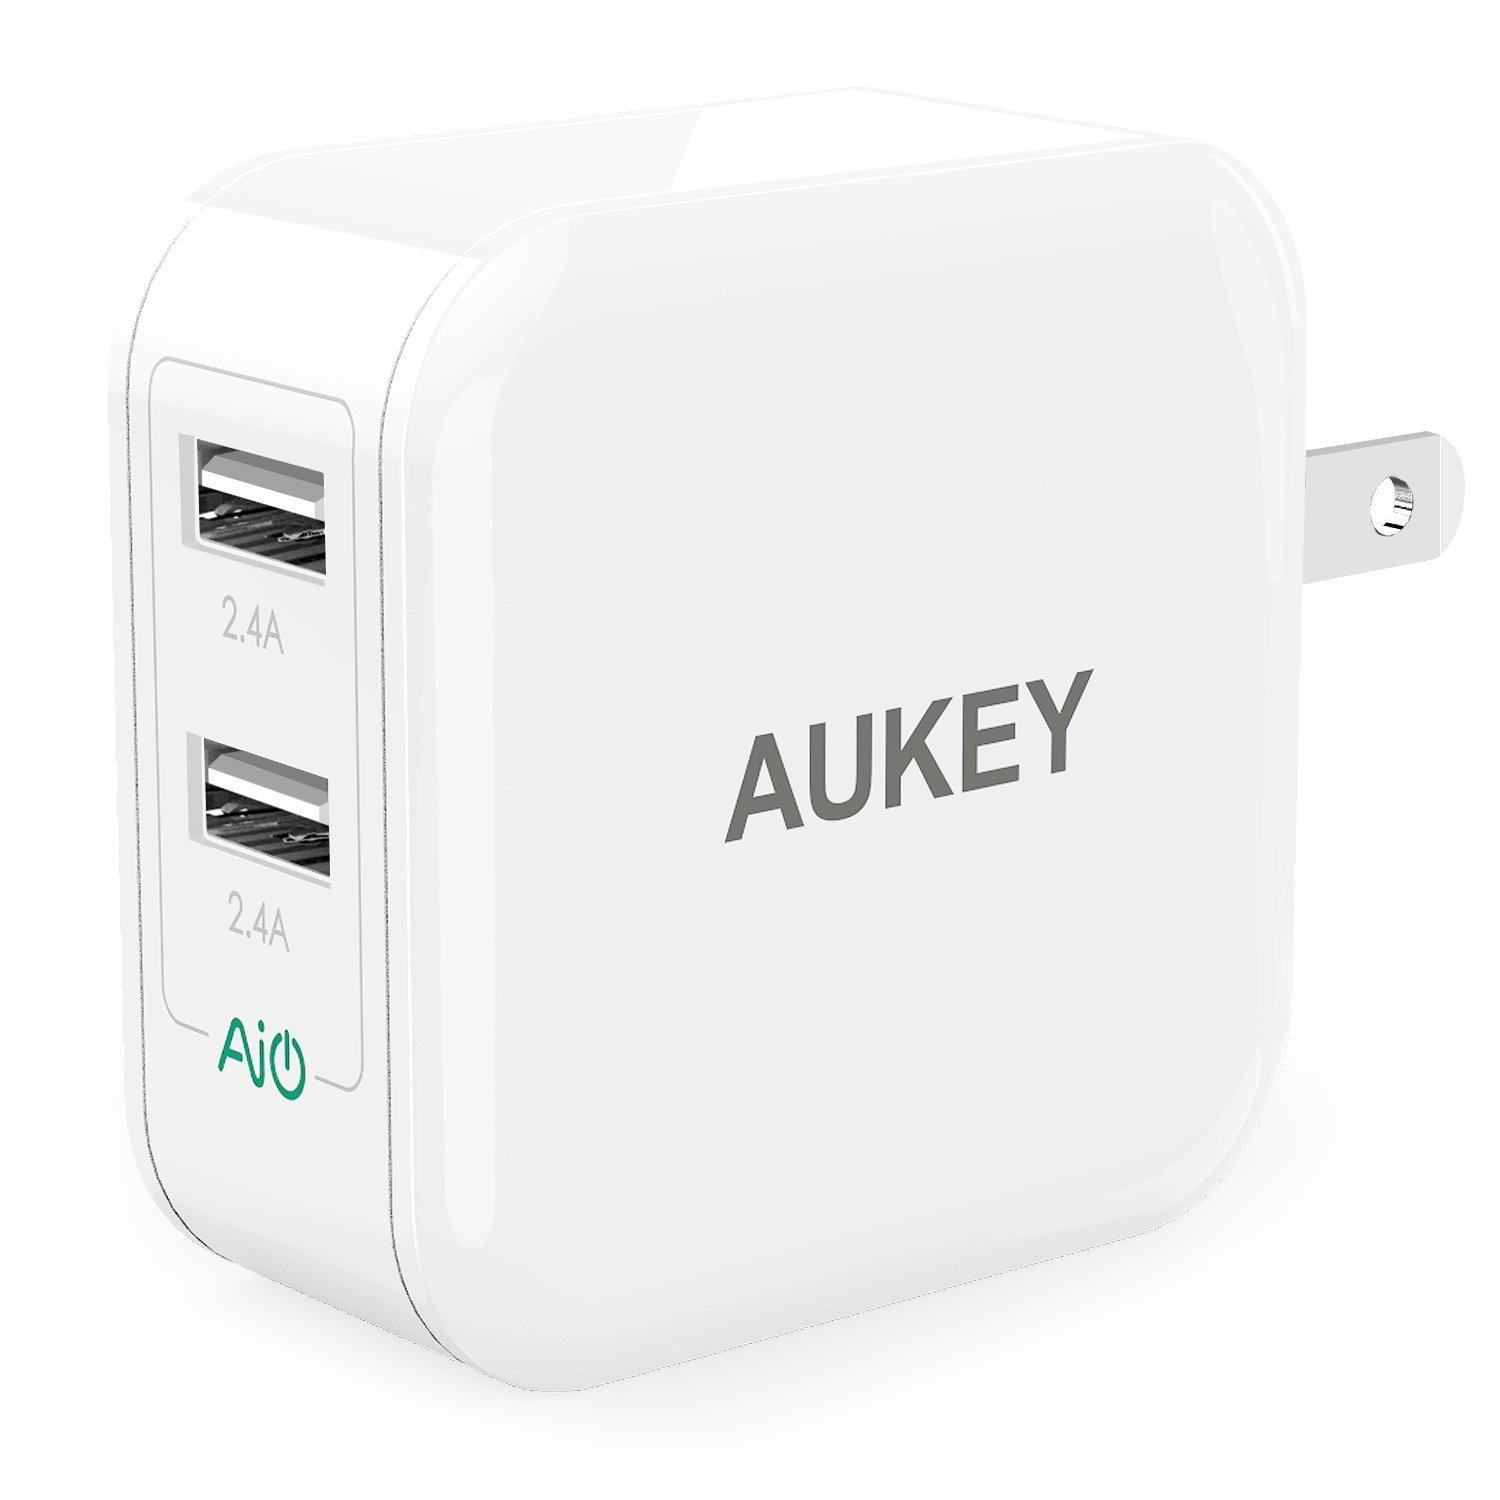 Aukey Dual-Port USB Wall Charger